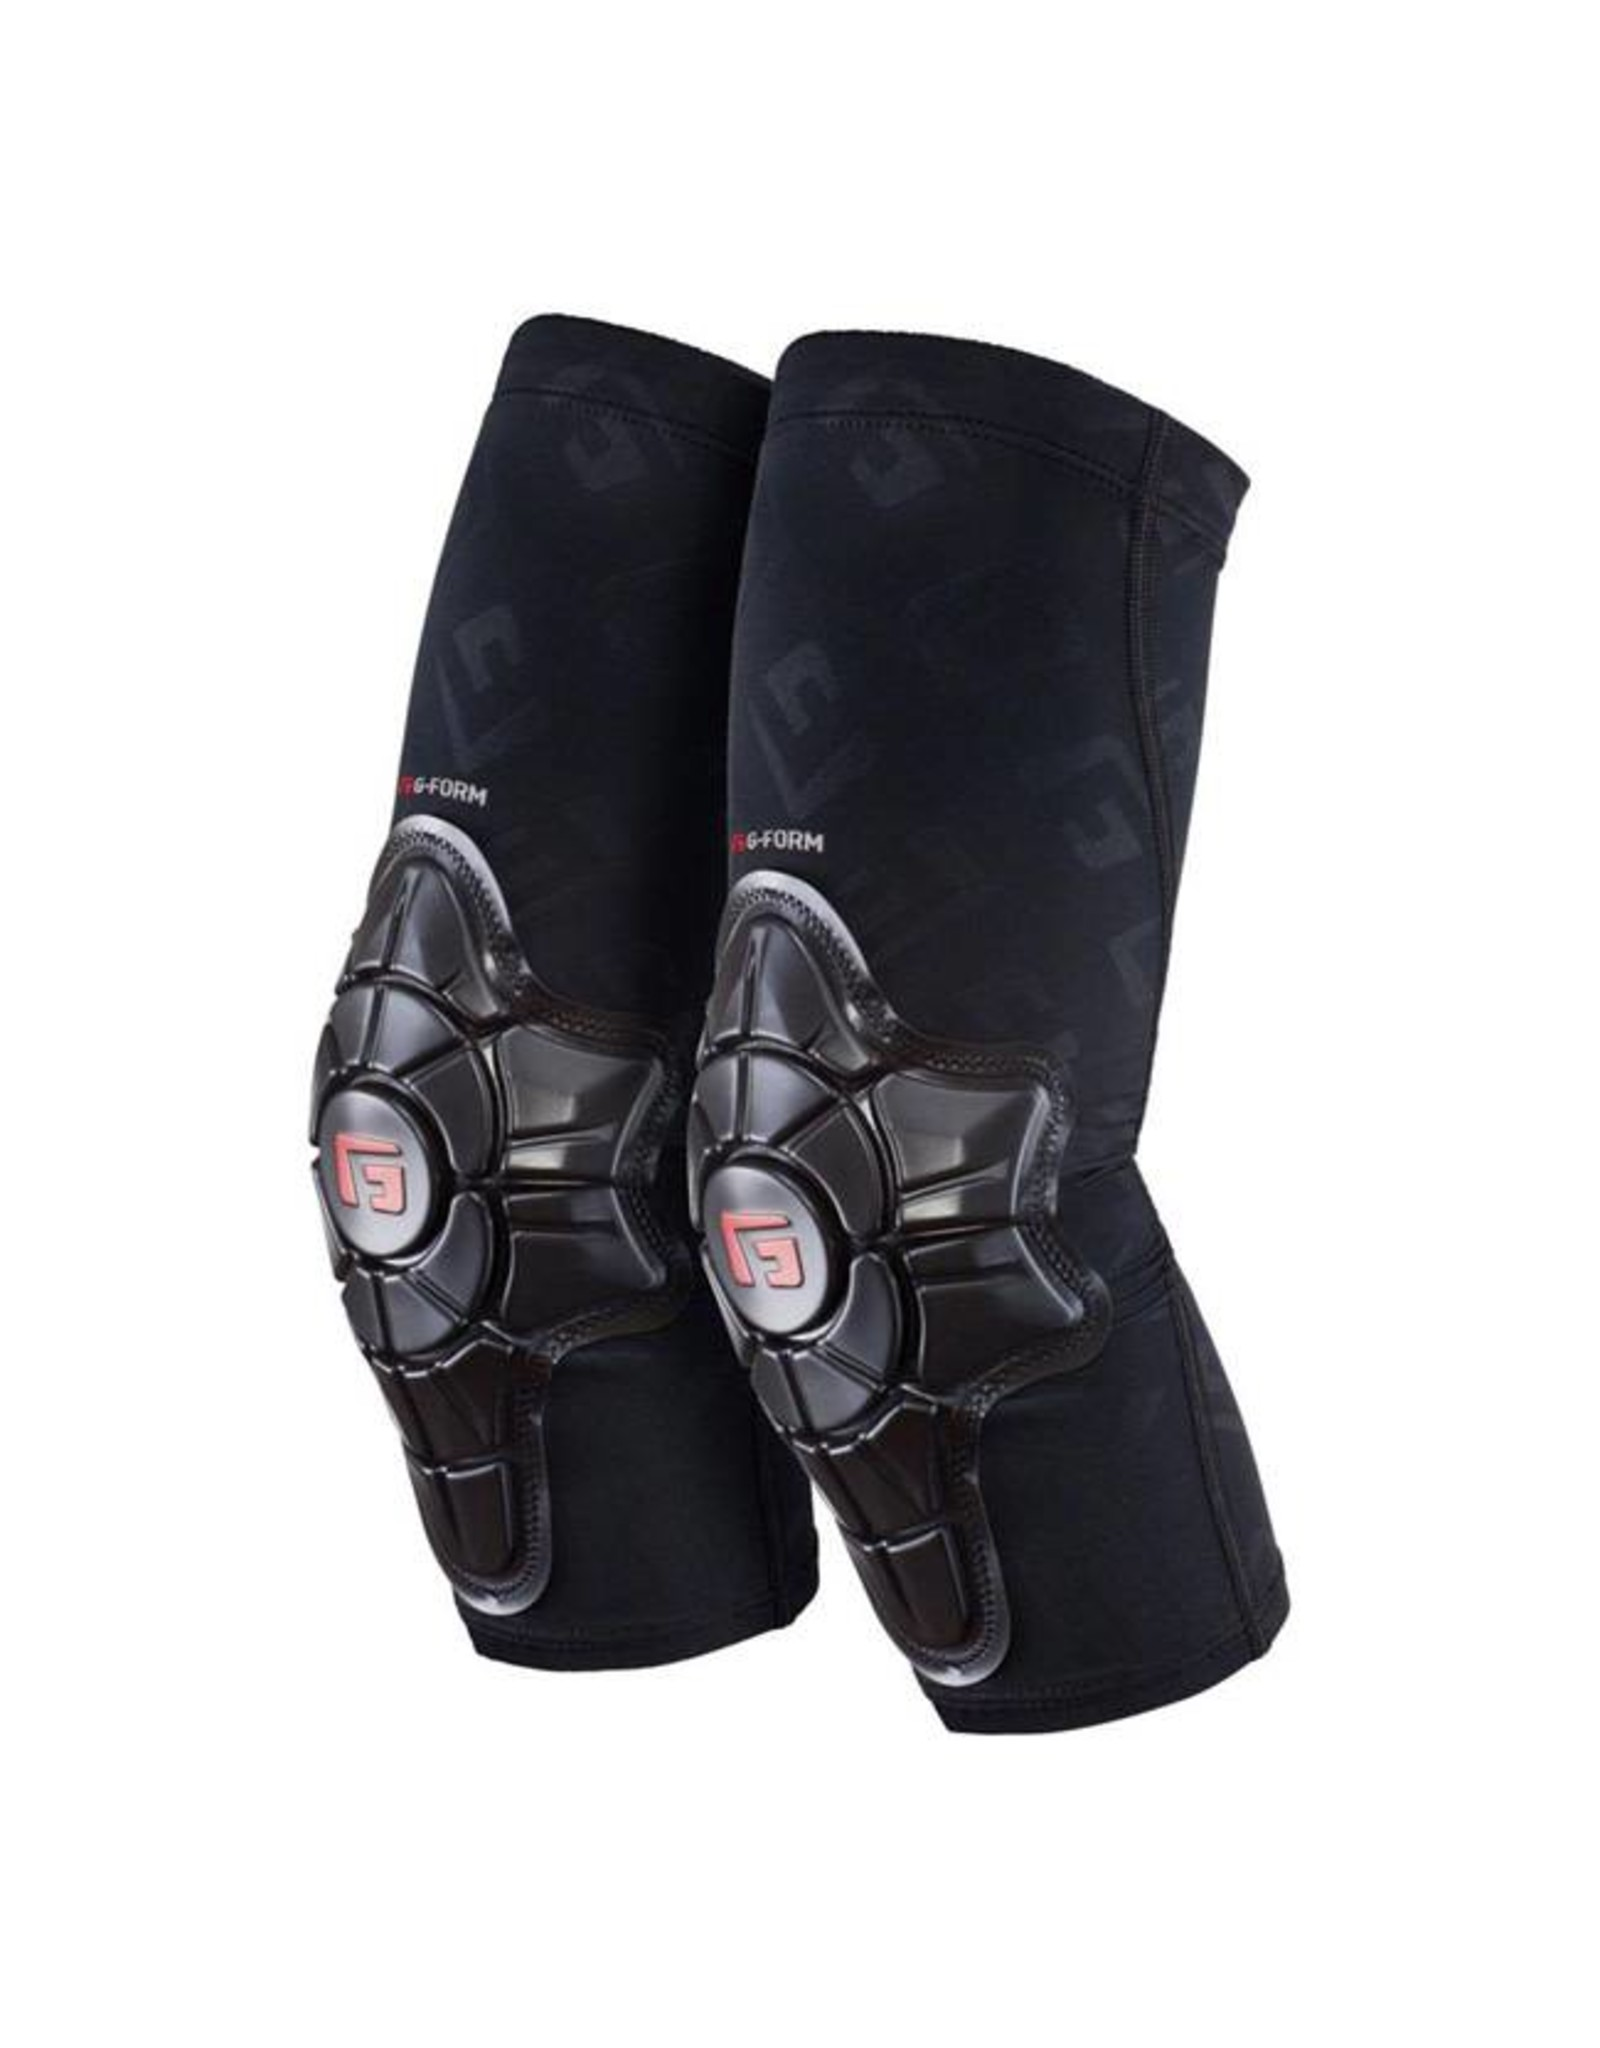 G-Form G-Form Pro-X Elbow Pad: Black/Embossed G, SM